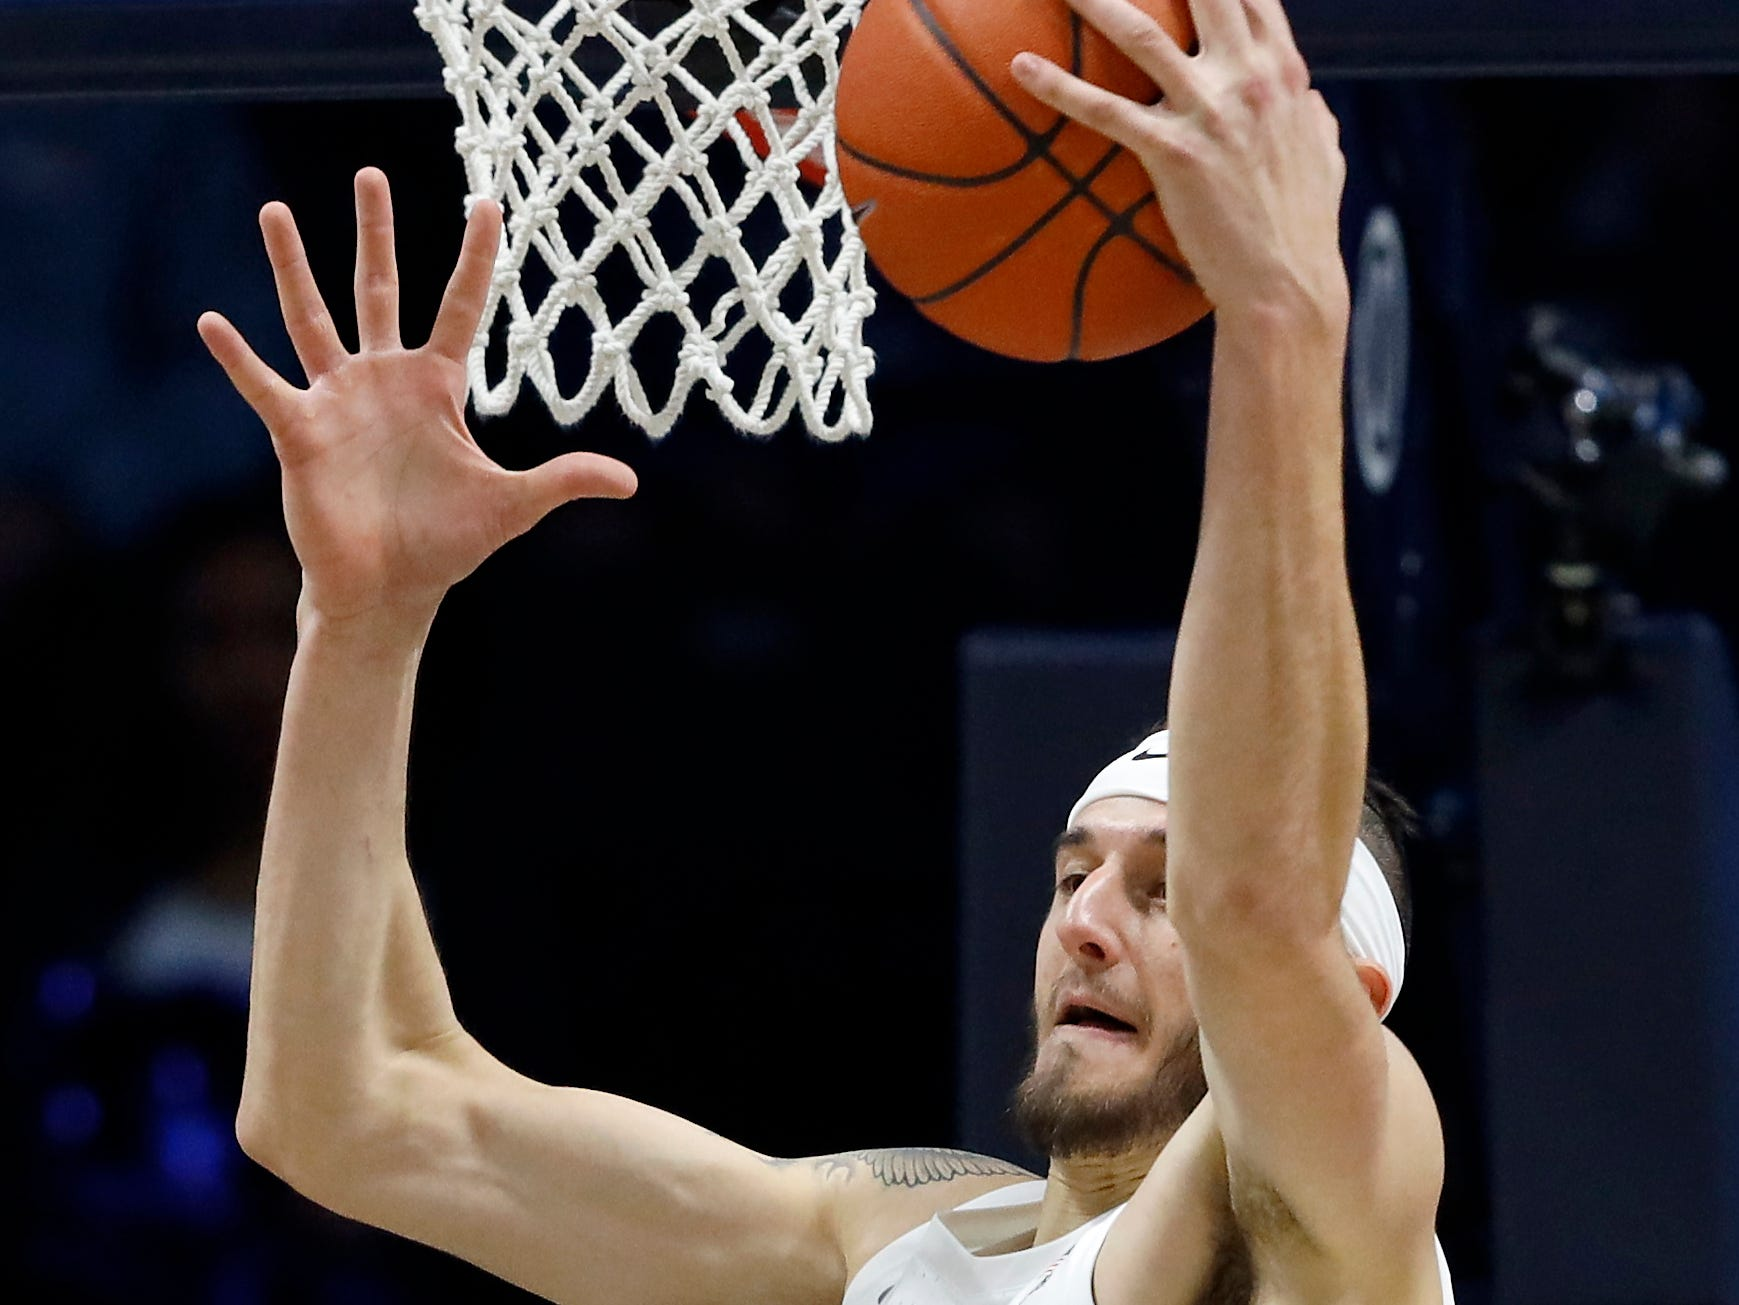 Xavier Musketeers forward Zach Hankins reaches out for a rebound in the first half of a game against Detroit Mercy at the Cintas Center on Friday.